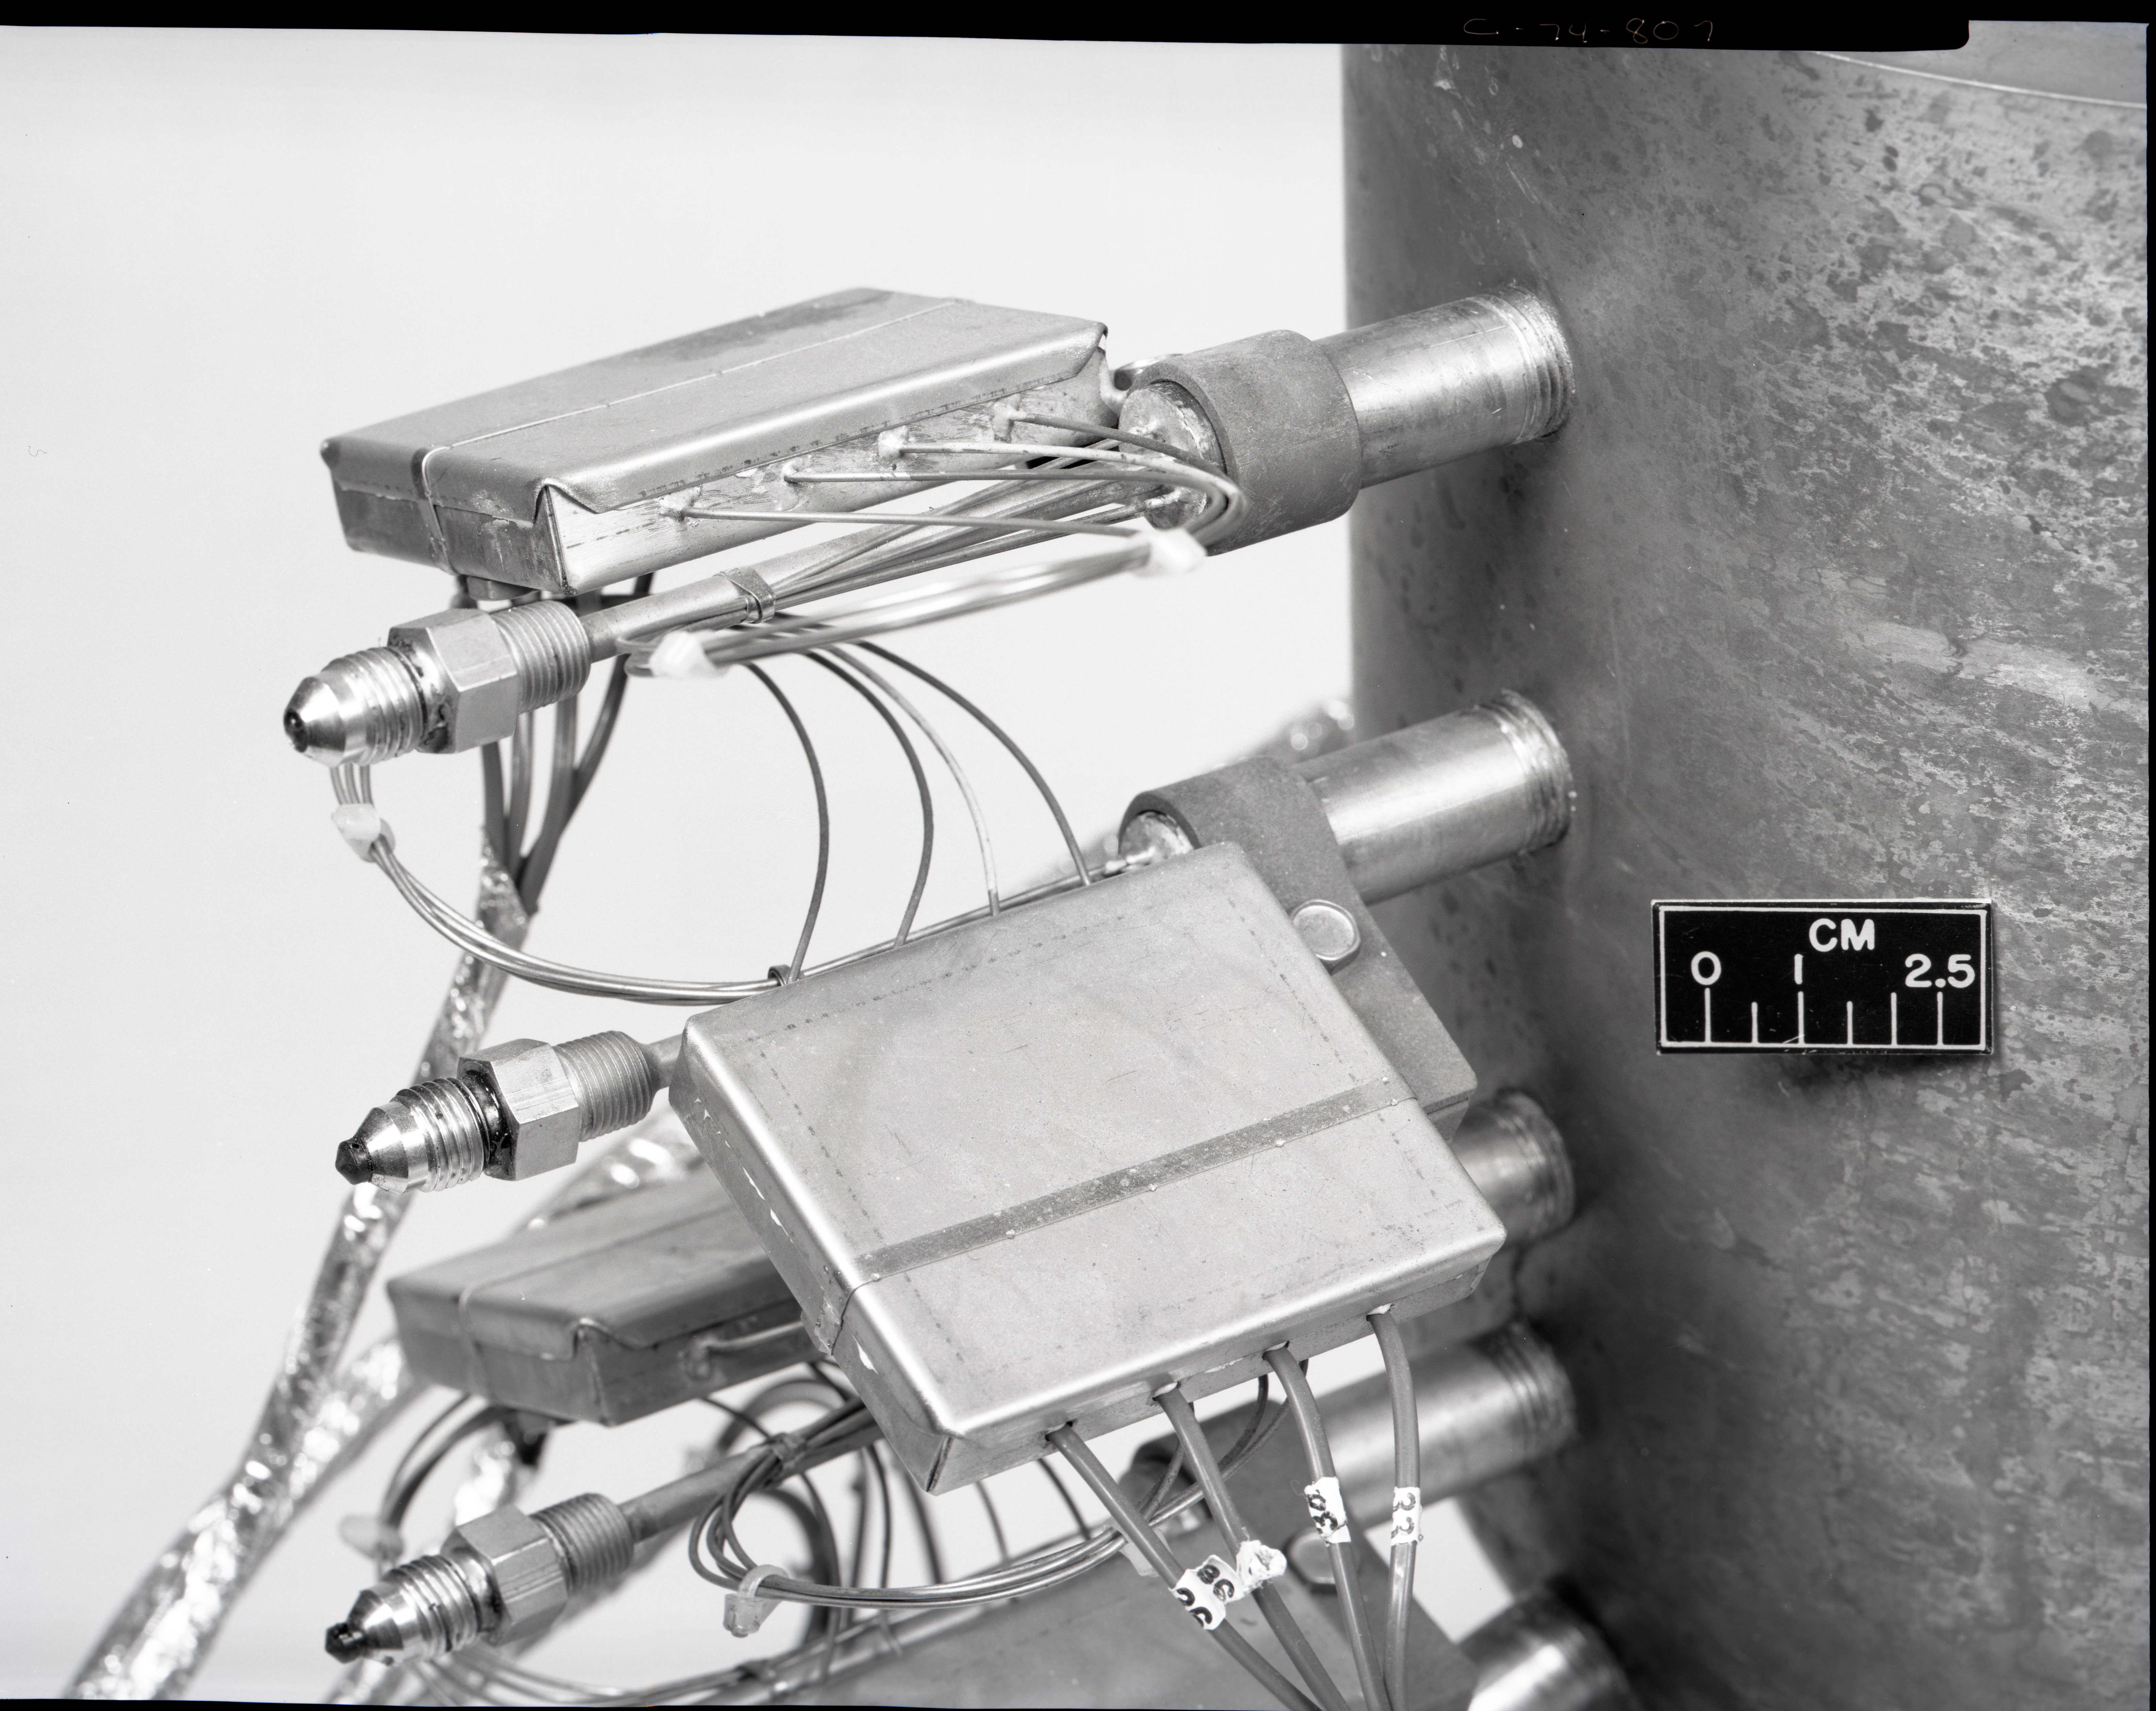 COPPER HEAT SINK ROCKET ENGINE FROM THE SOUTH 40